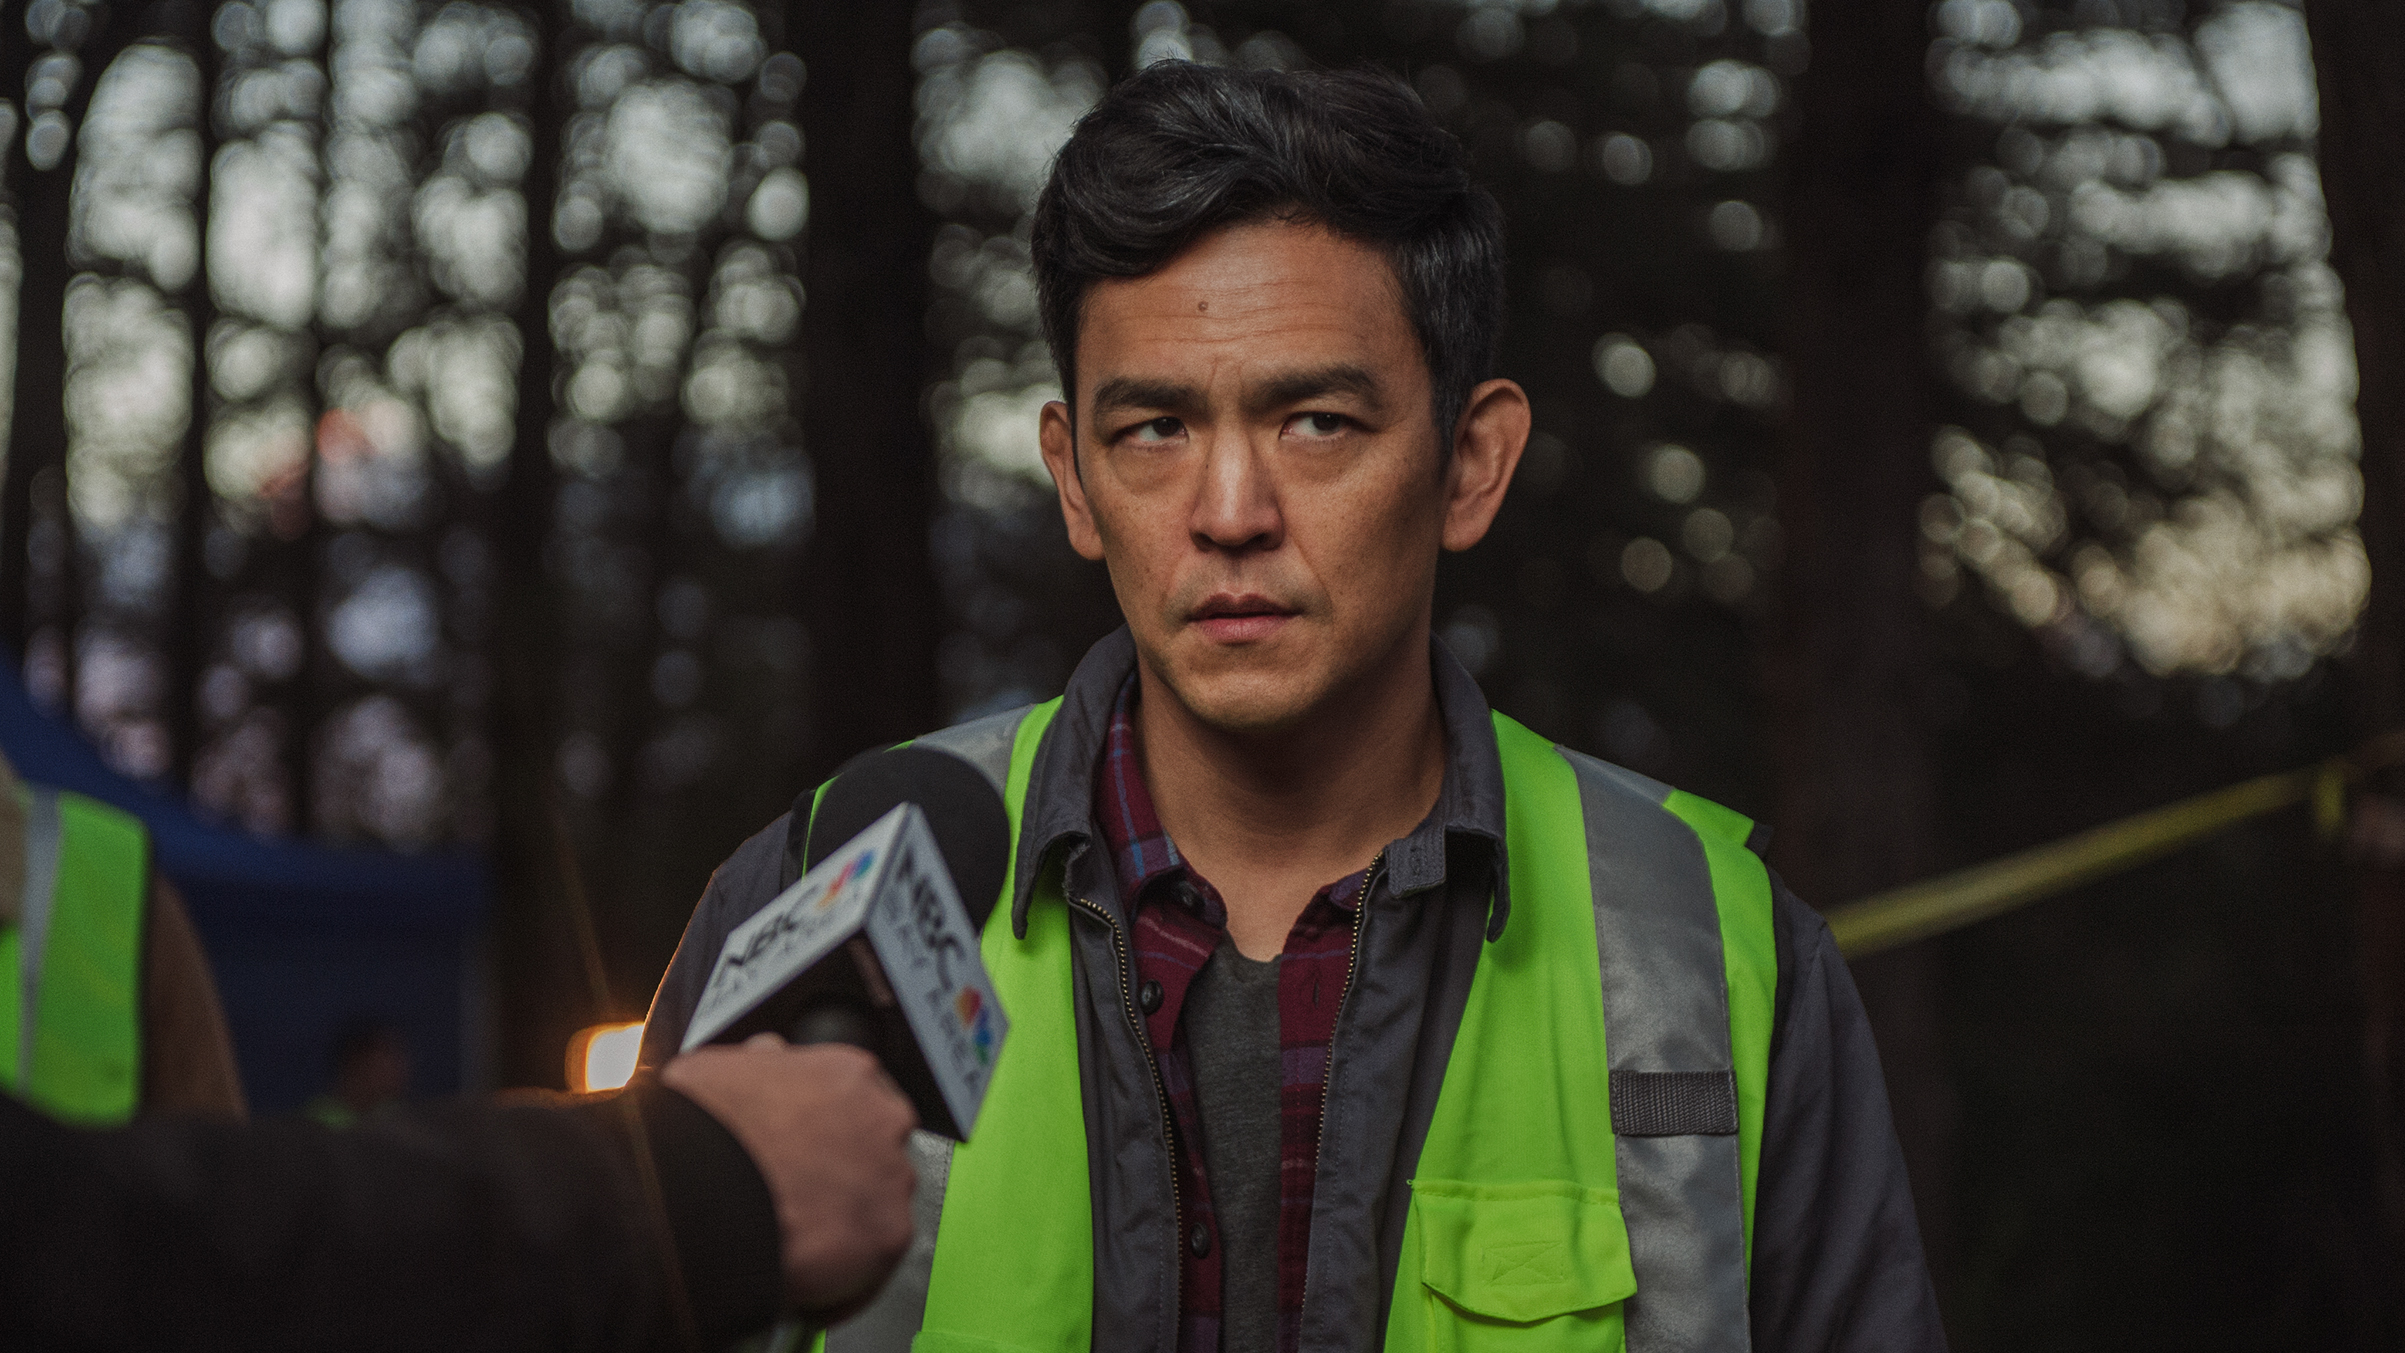 John Cho stars as David Kim in Screen Gems' 'Searching'.